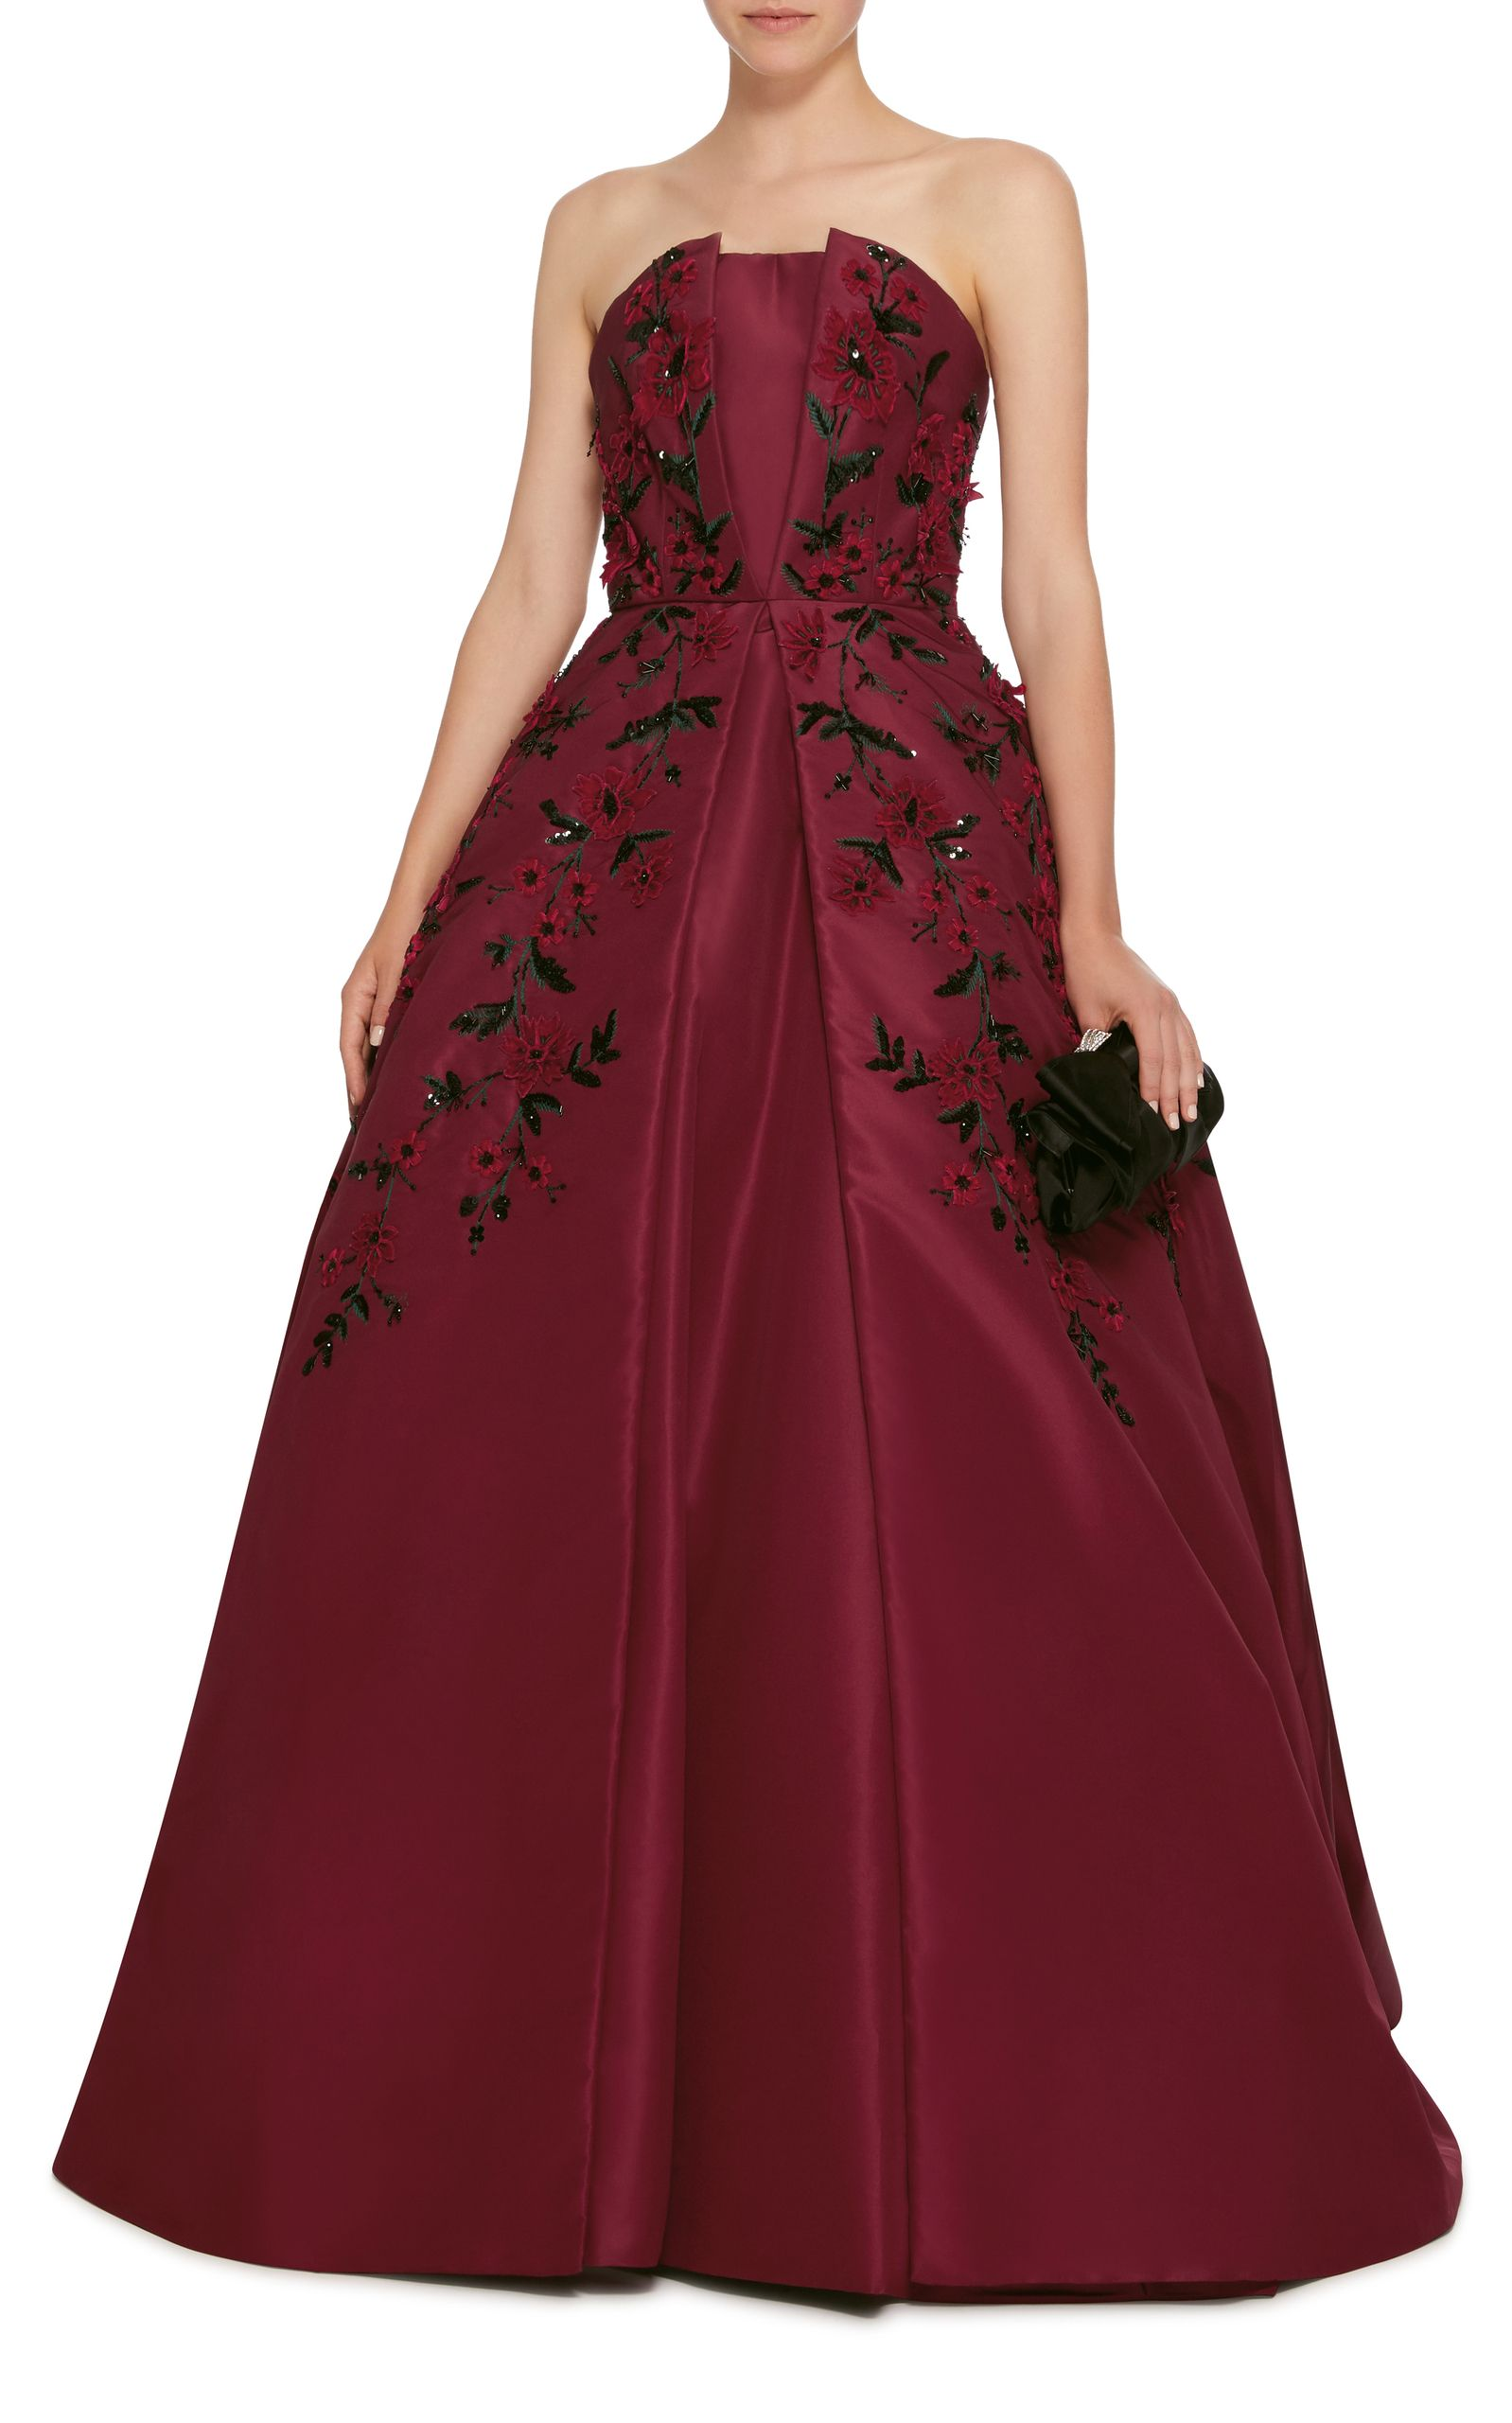 Strapless rose embroidered gown by elizabeth kennedy now available